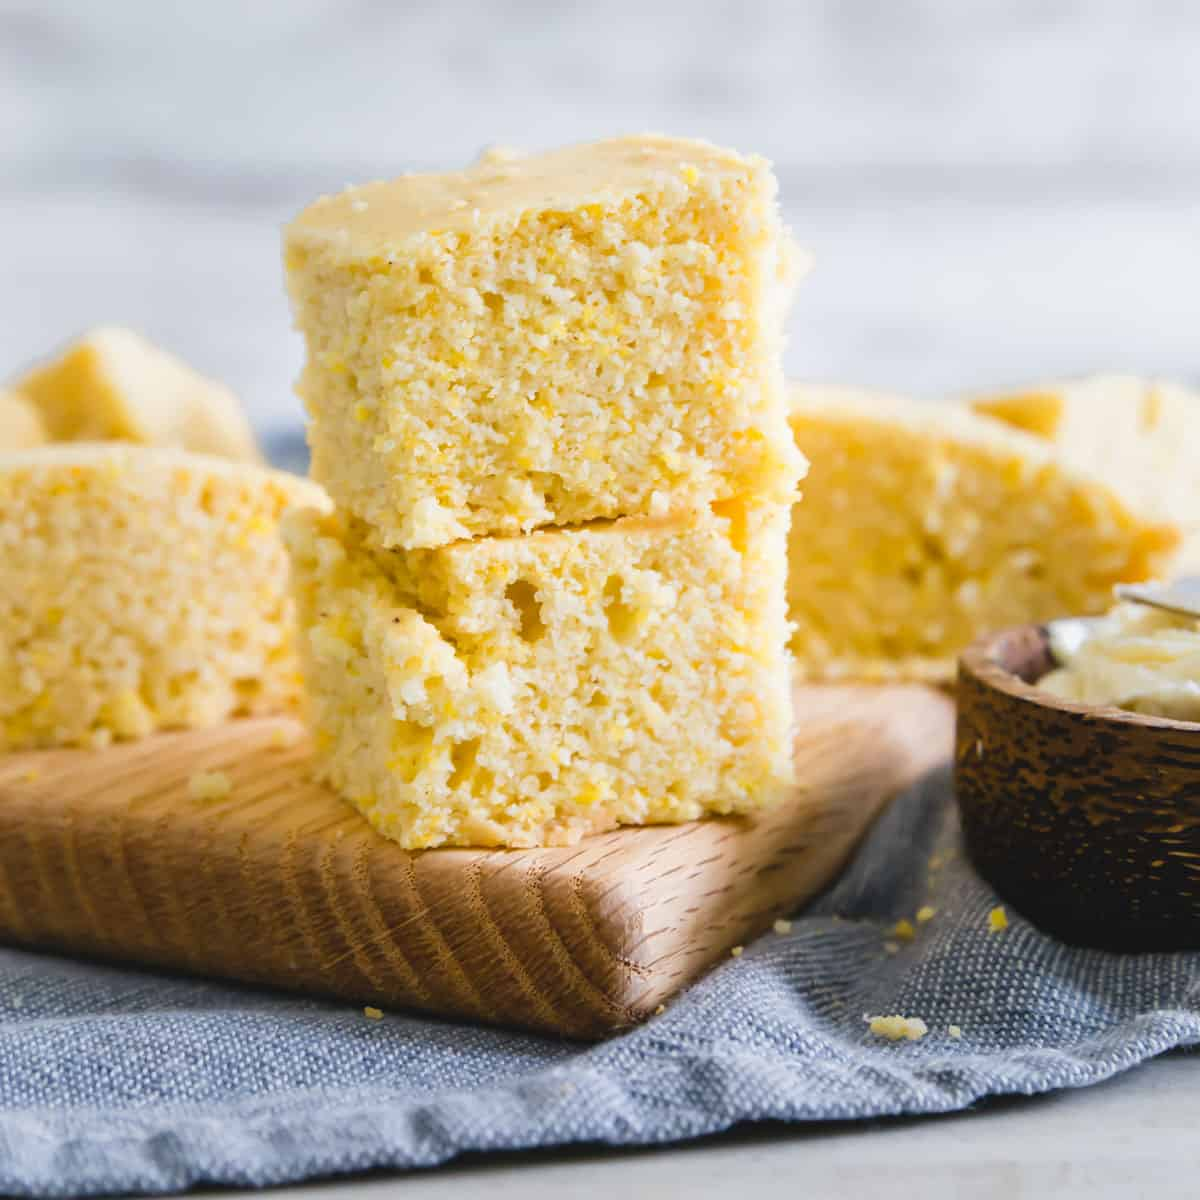 This easy vegan cornbread recipe is also gluten-free! It bakes up moist with the perfect textured cornbread bite and just a hint of sweetness so you can enjoy it with a bowl of chili or soup just as much as with a pat of butter by itself!